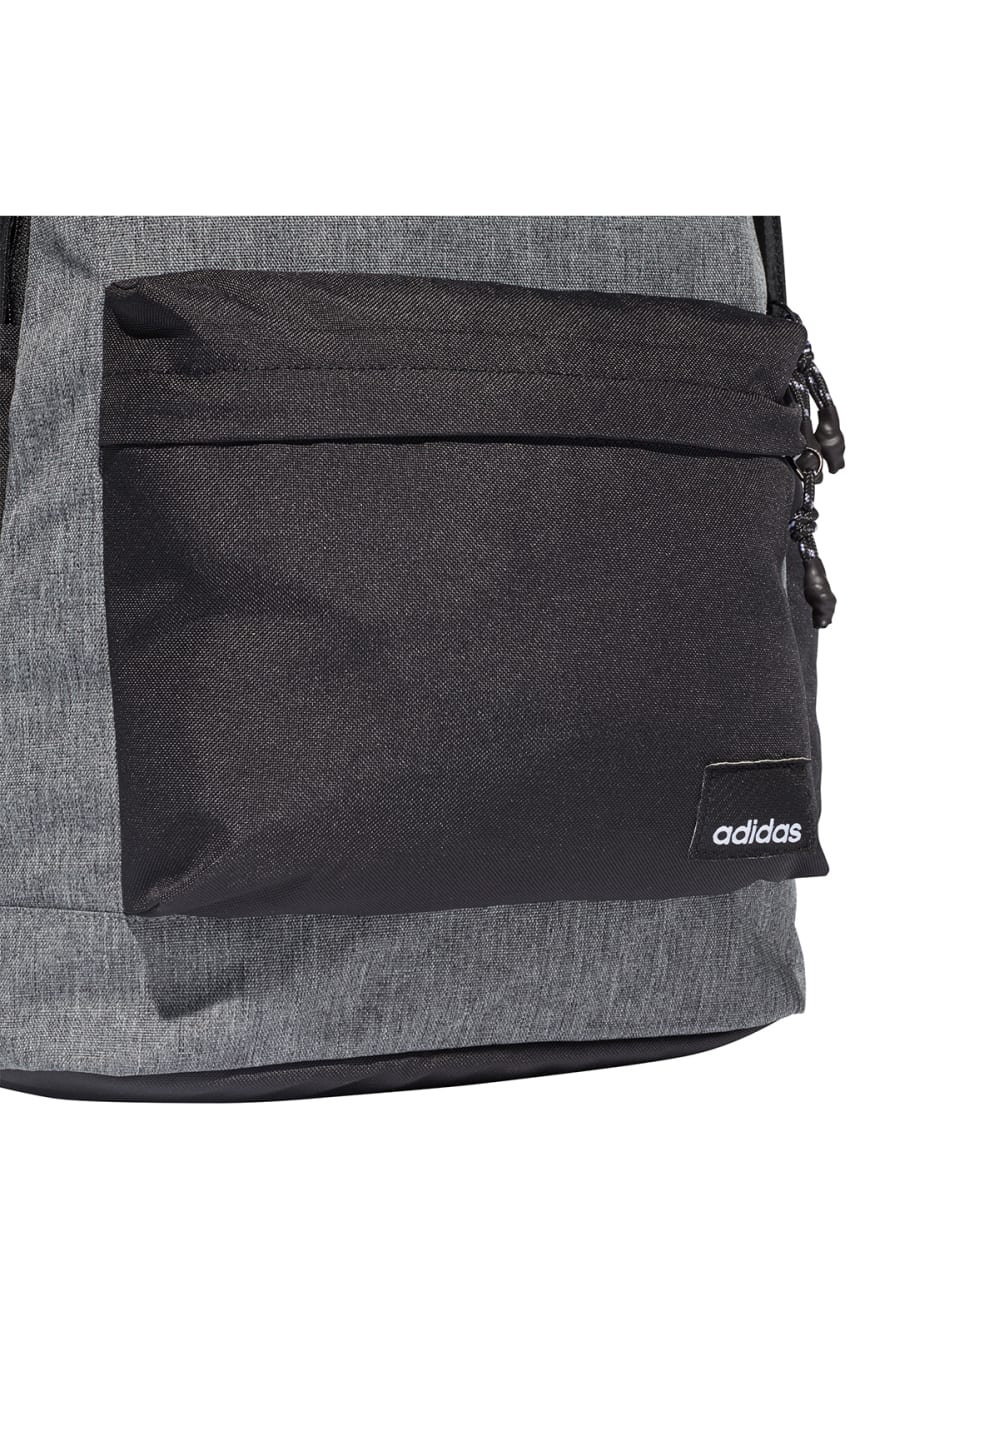 42efd0bcb352 ... adidas Daily XL Backpack - Backpacks for Men - Grey. Back to Overview.  1  2  3  4  5. Previous